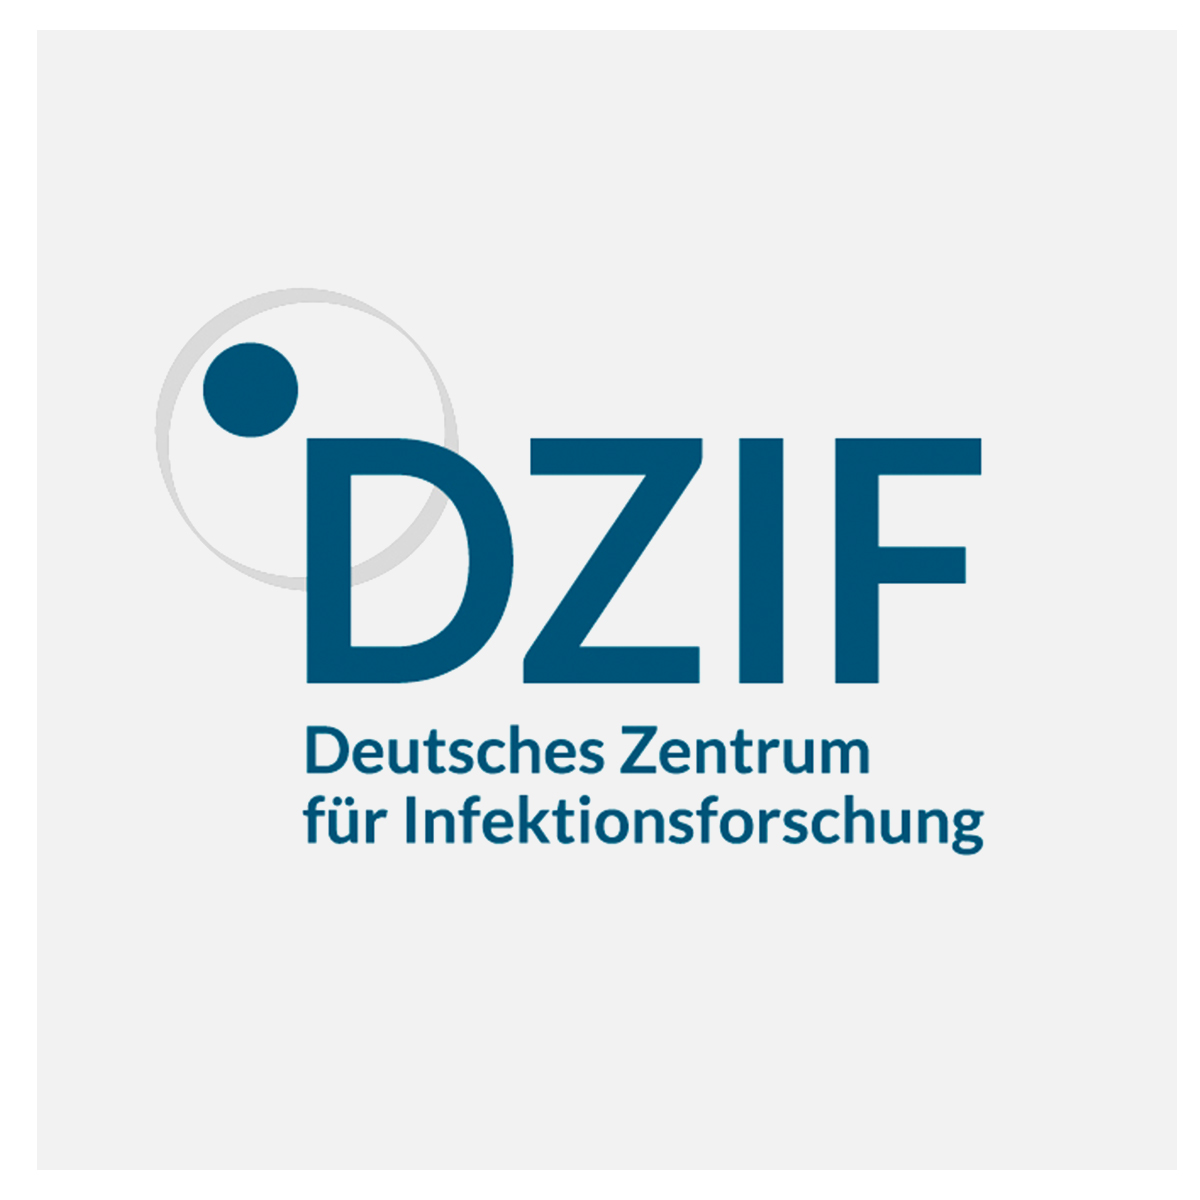 Logo of the German Center for Infection Research